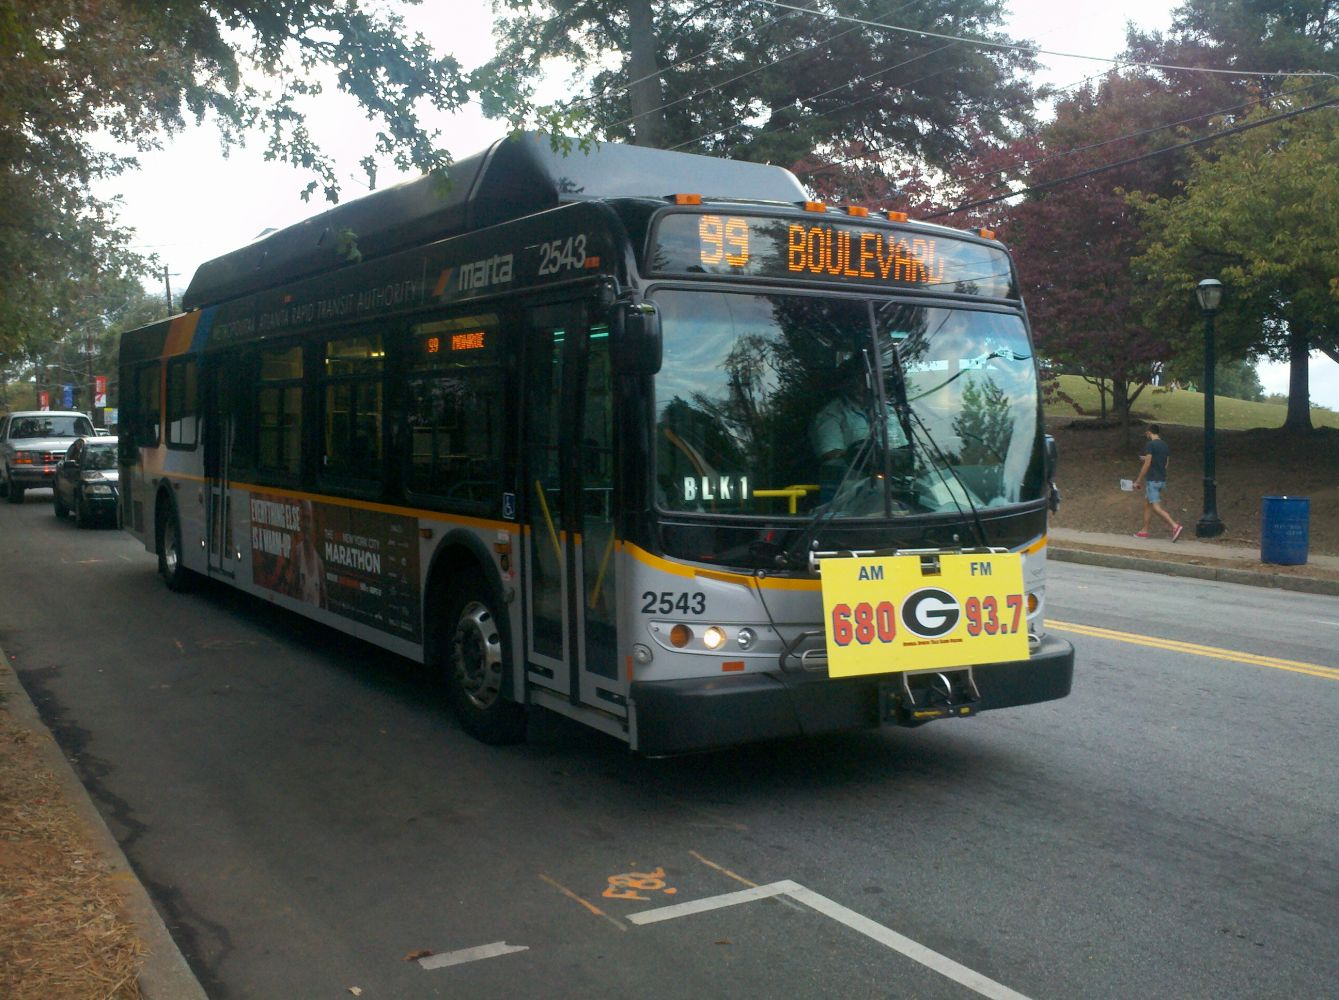 2010 New Flyer Industries C40LFR MARTA Bus#2543